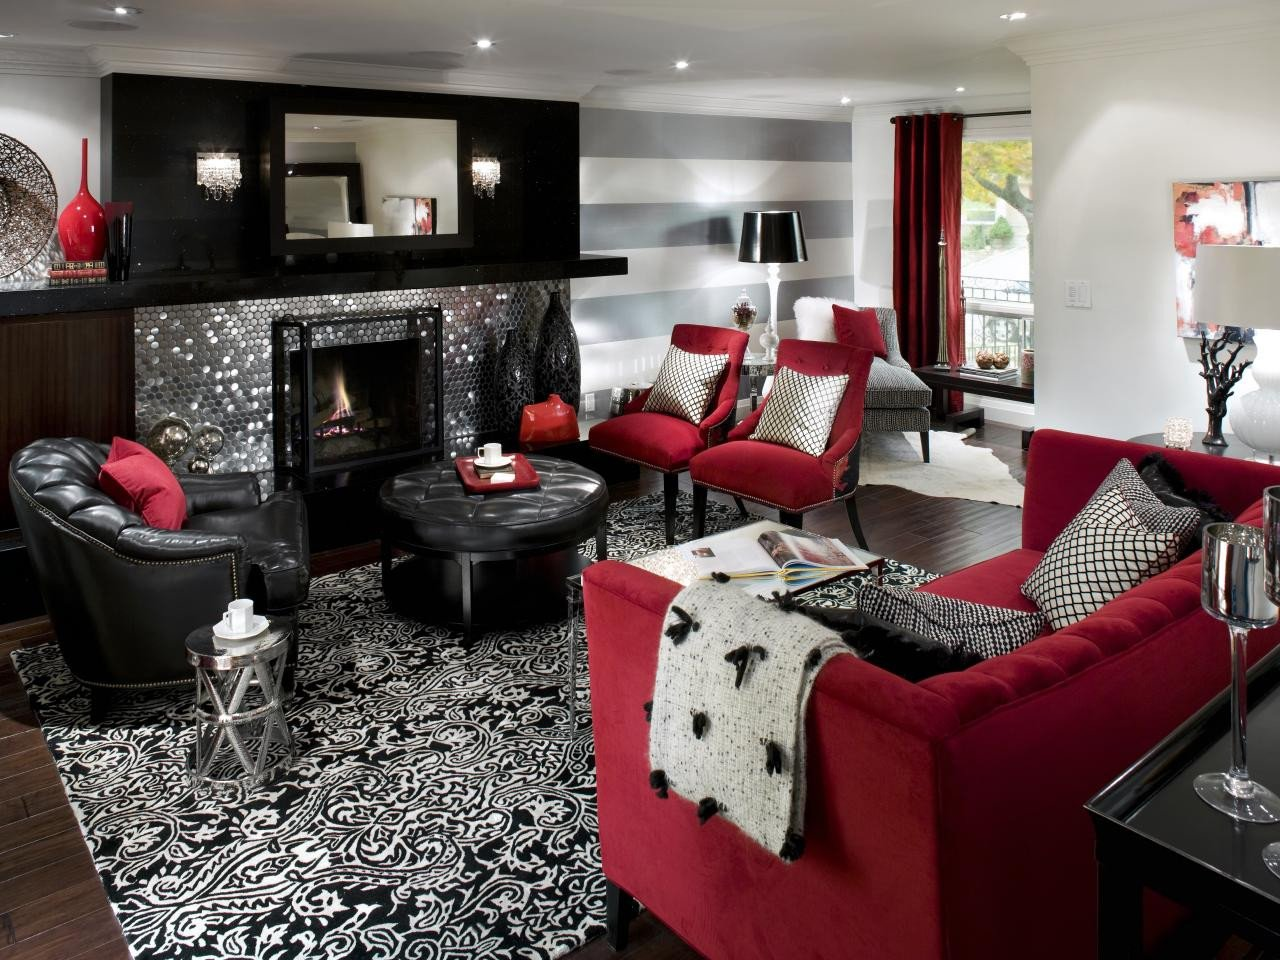 Black and White Living Room Decorating Ideas Beautiful Retro Red Black and White Family Room